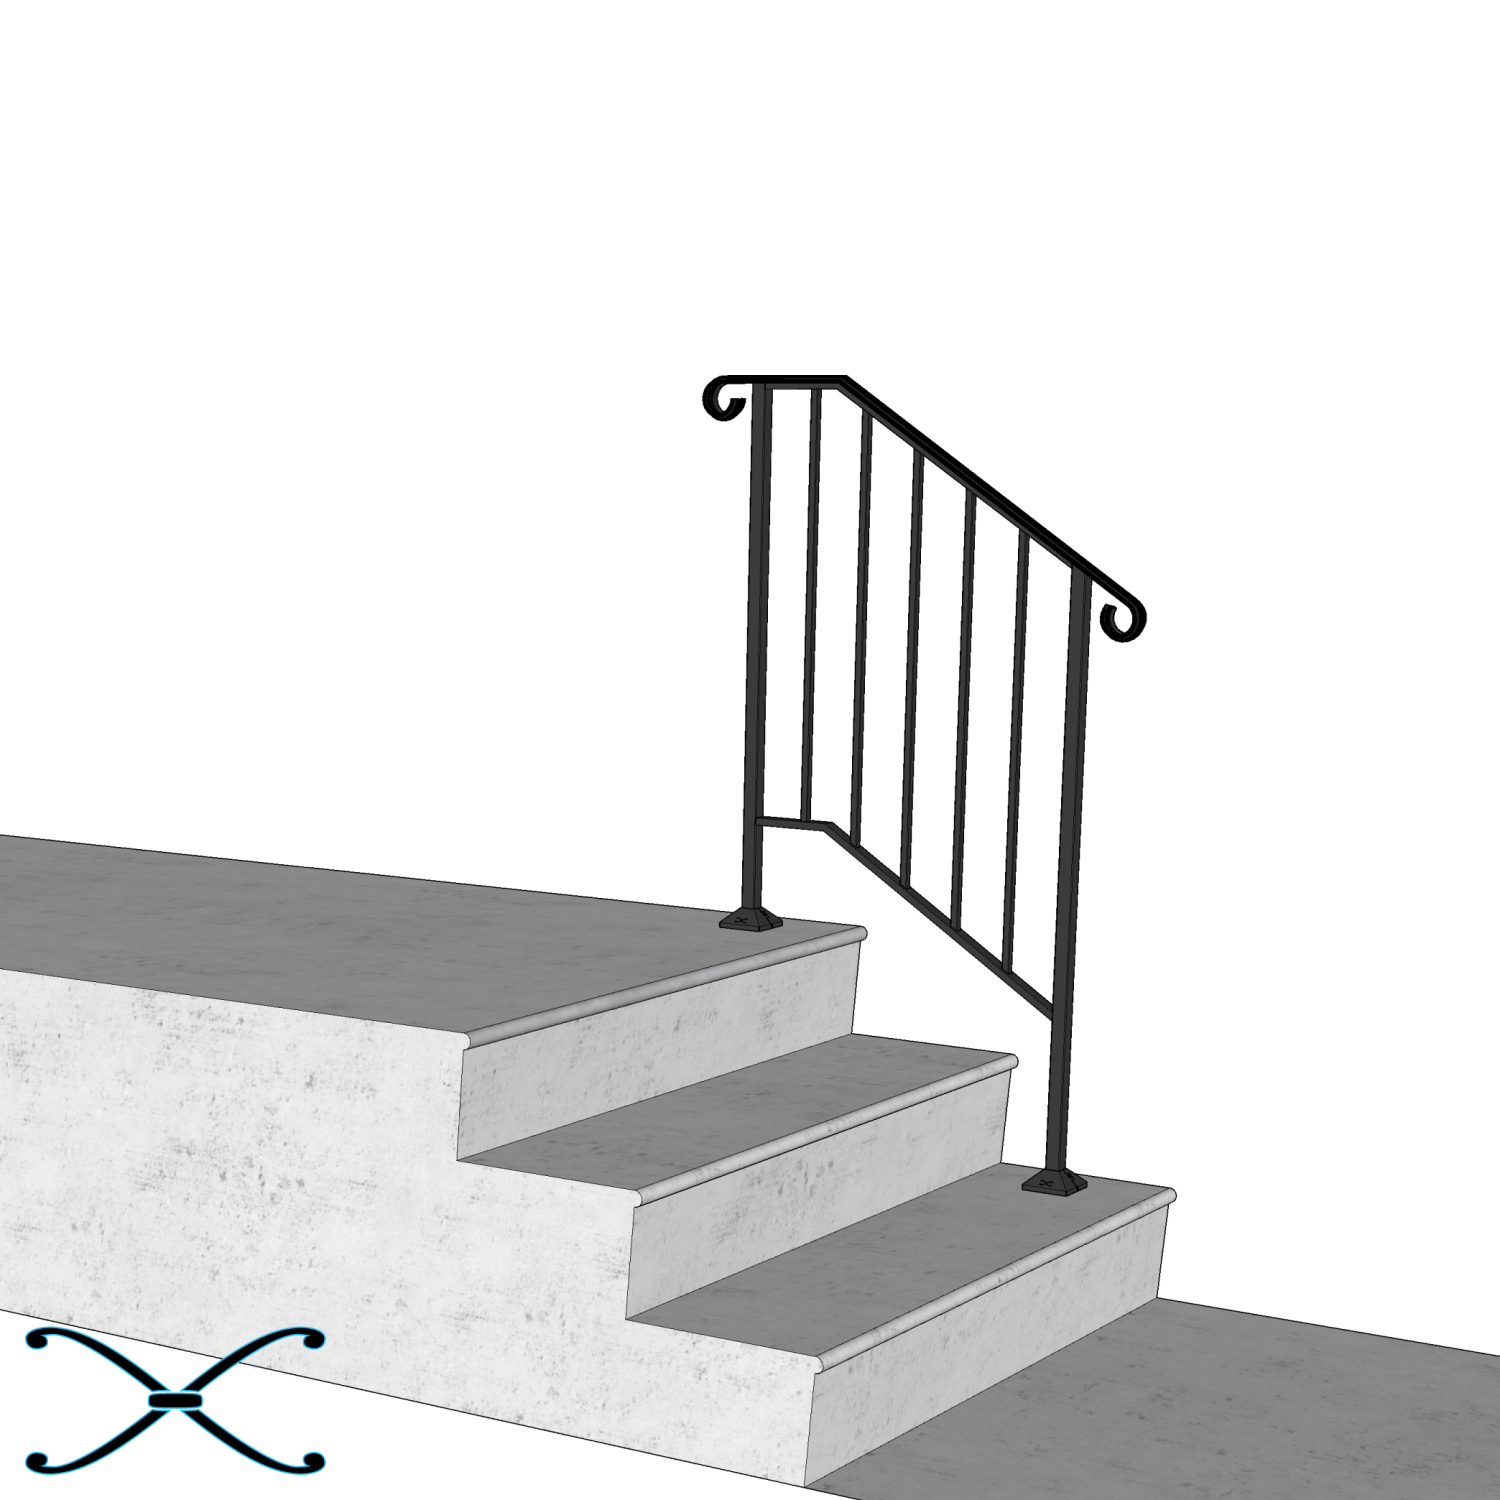 DIY Handrail   Strongest Most Reliable Do It Yourself Handrail ...